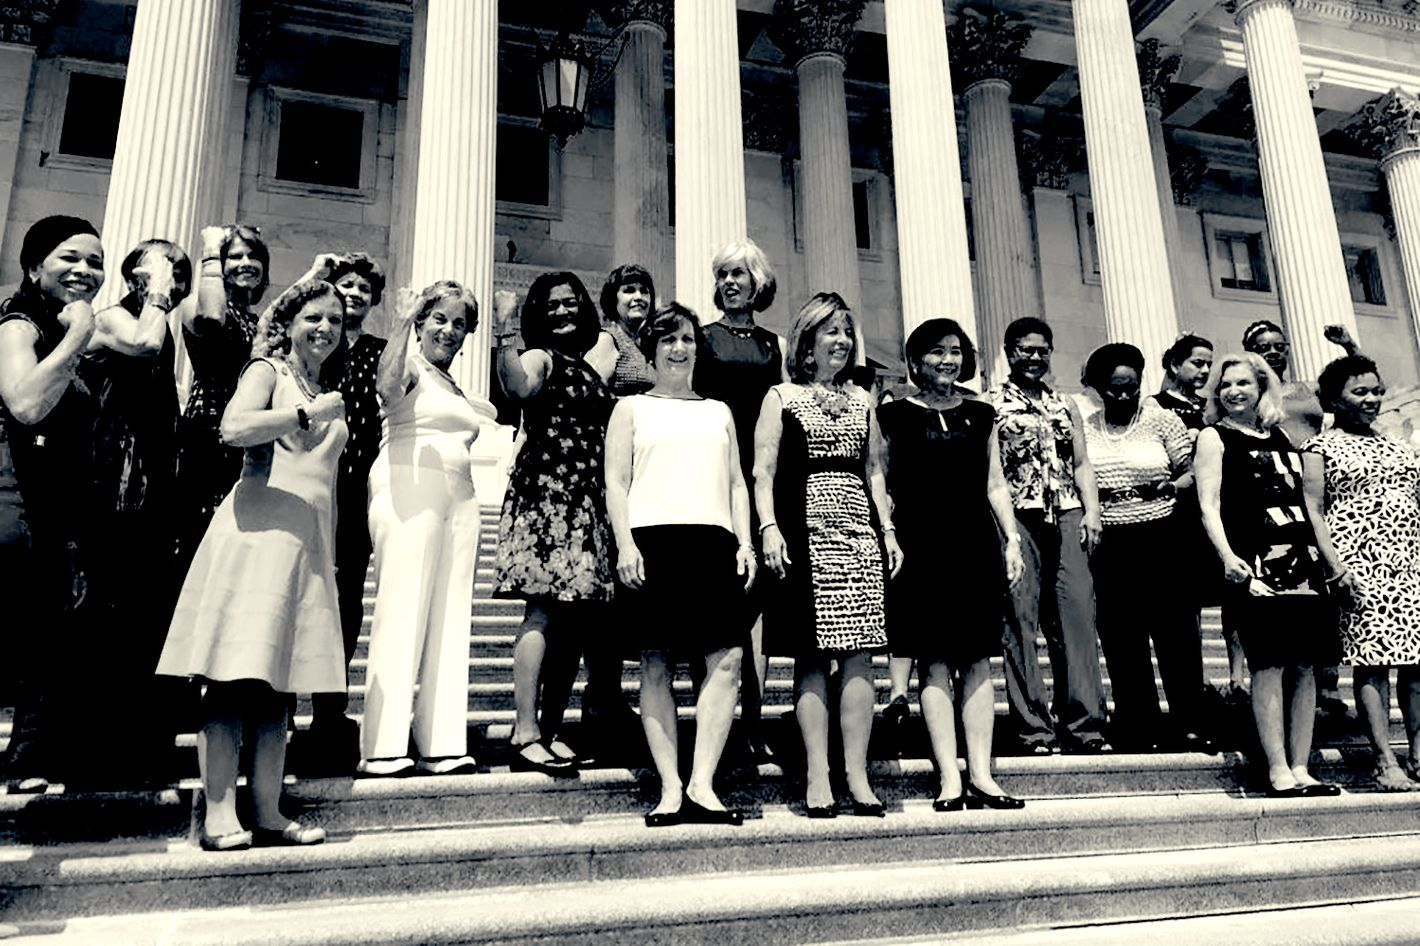 Congresswomen Go Sleeveless After Change to Dress Code